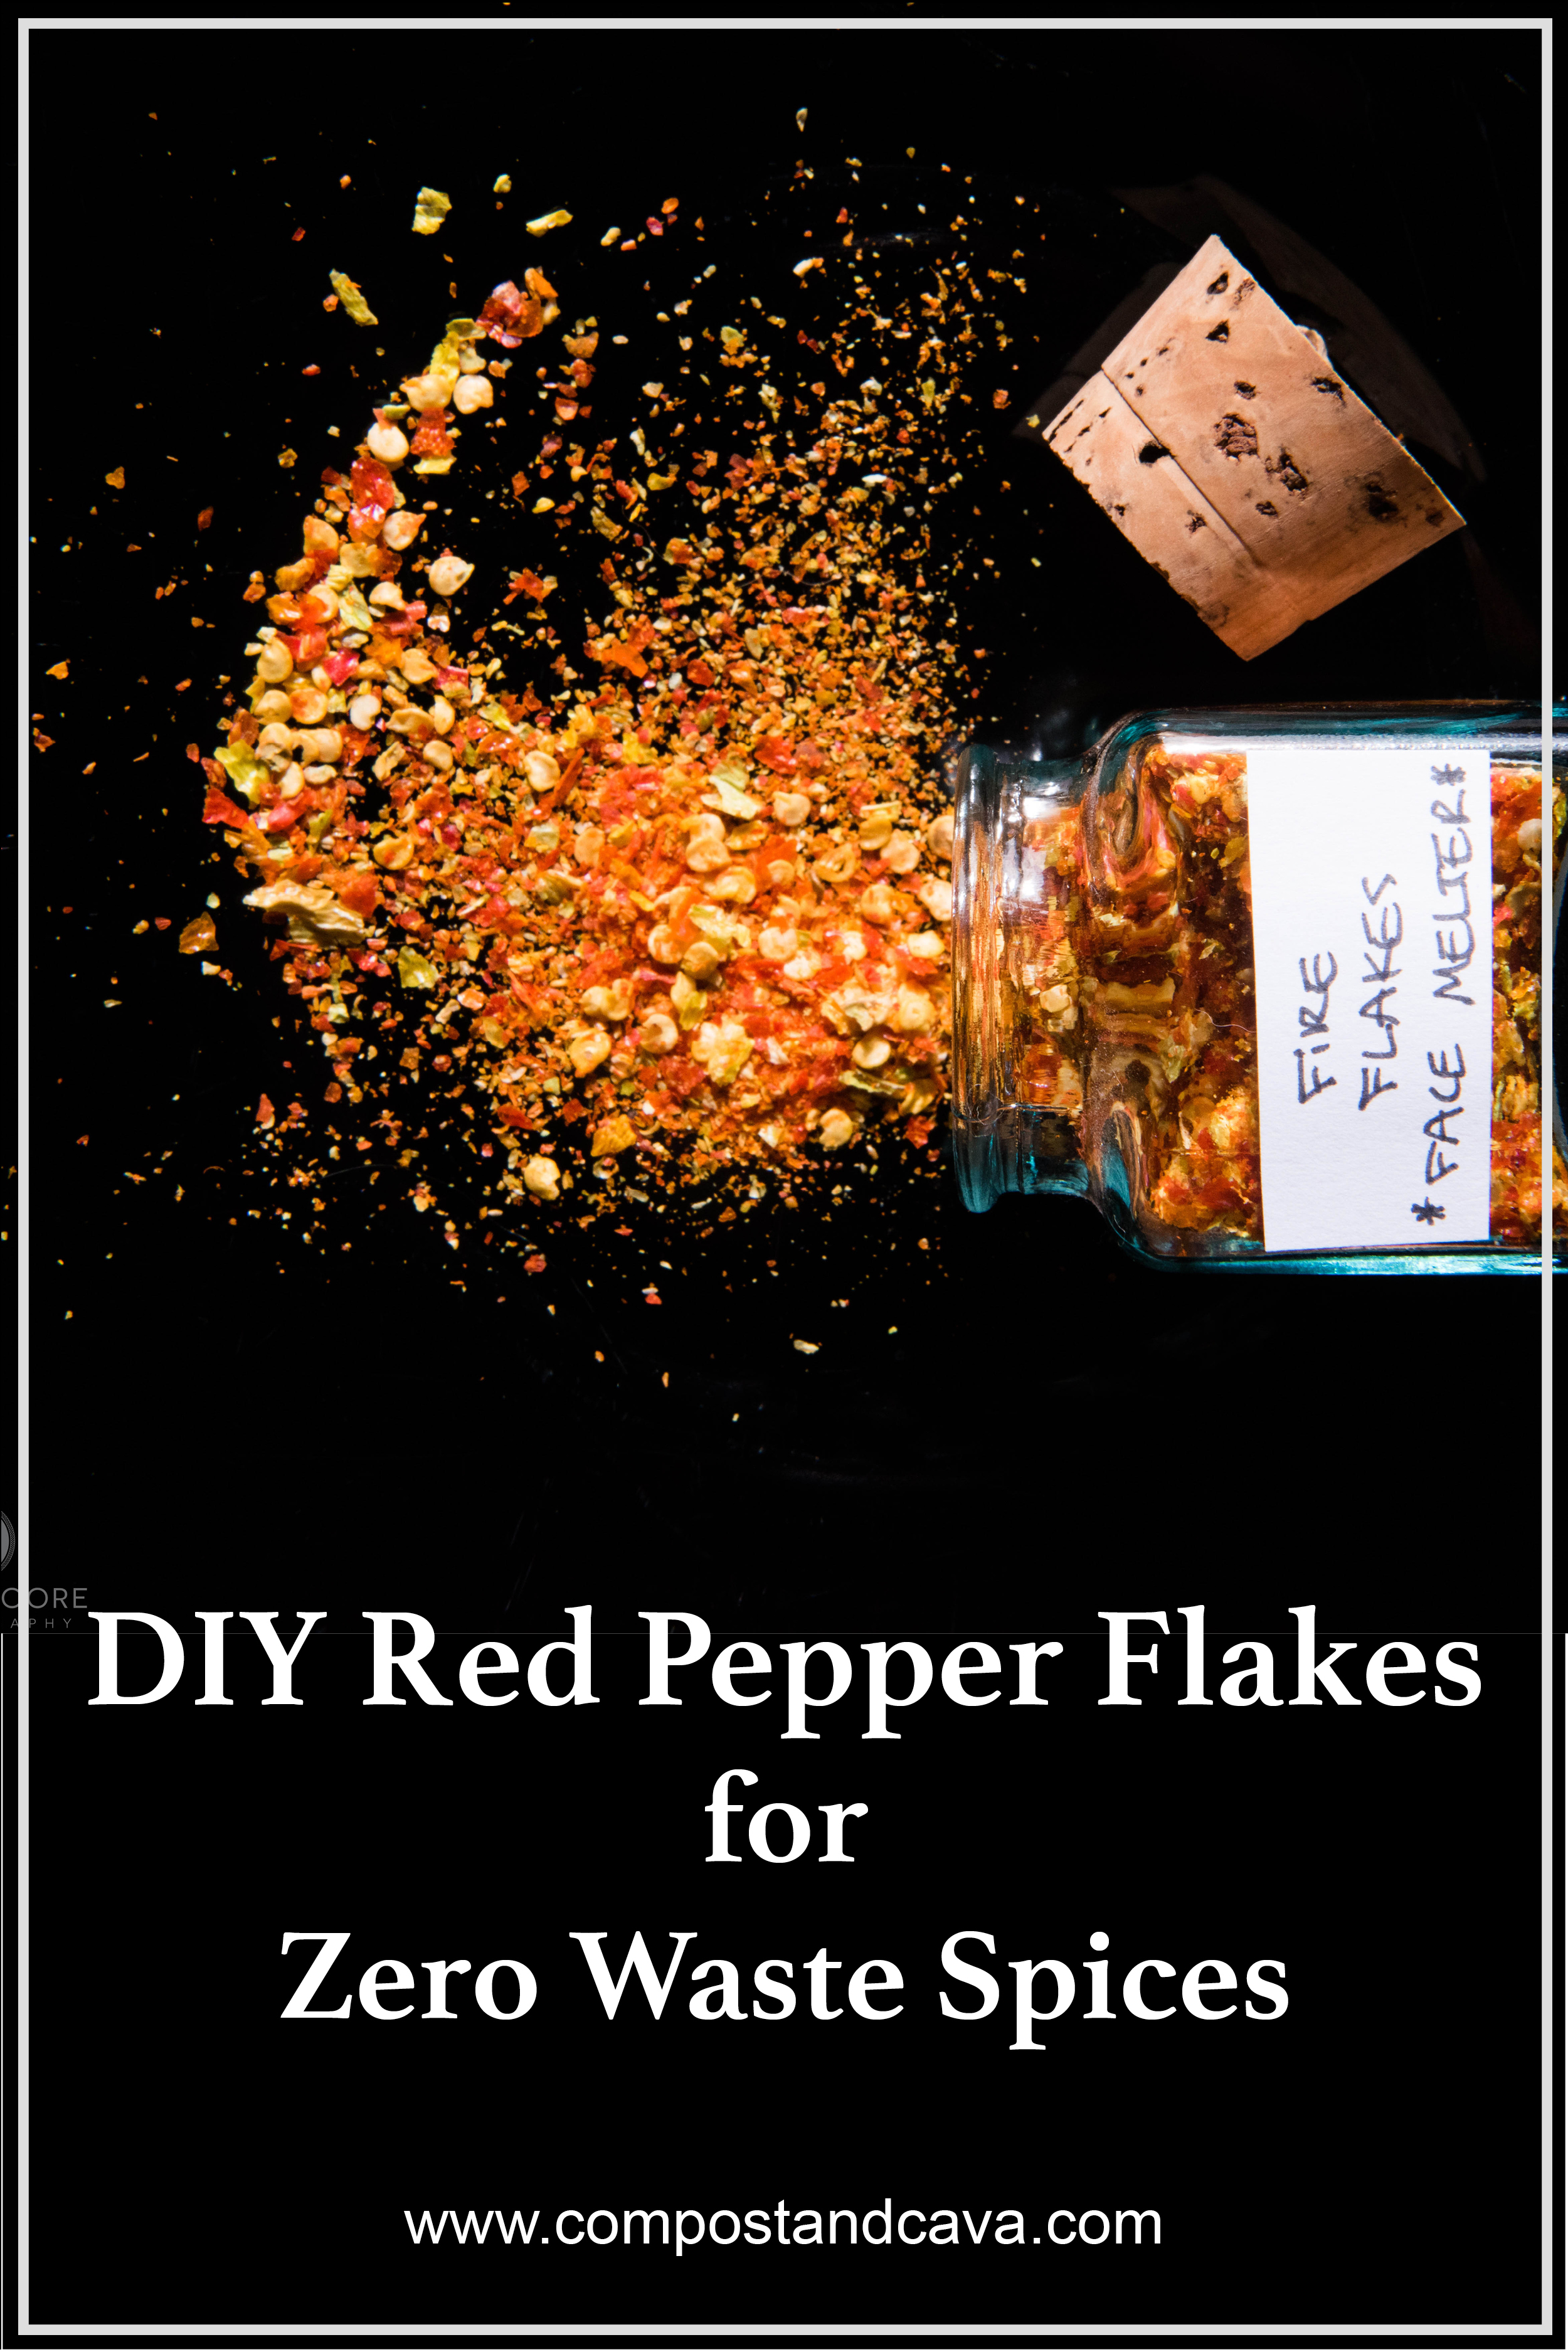 DIY Red Pepper Flakes for Zero Waste Spices